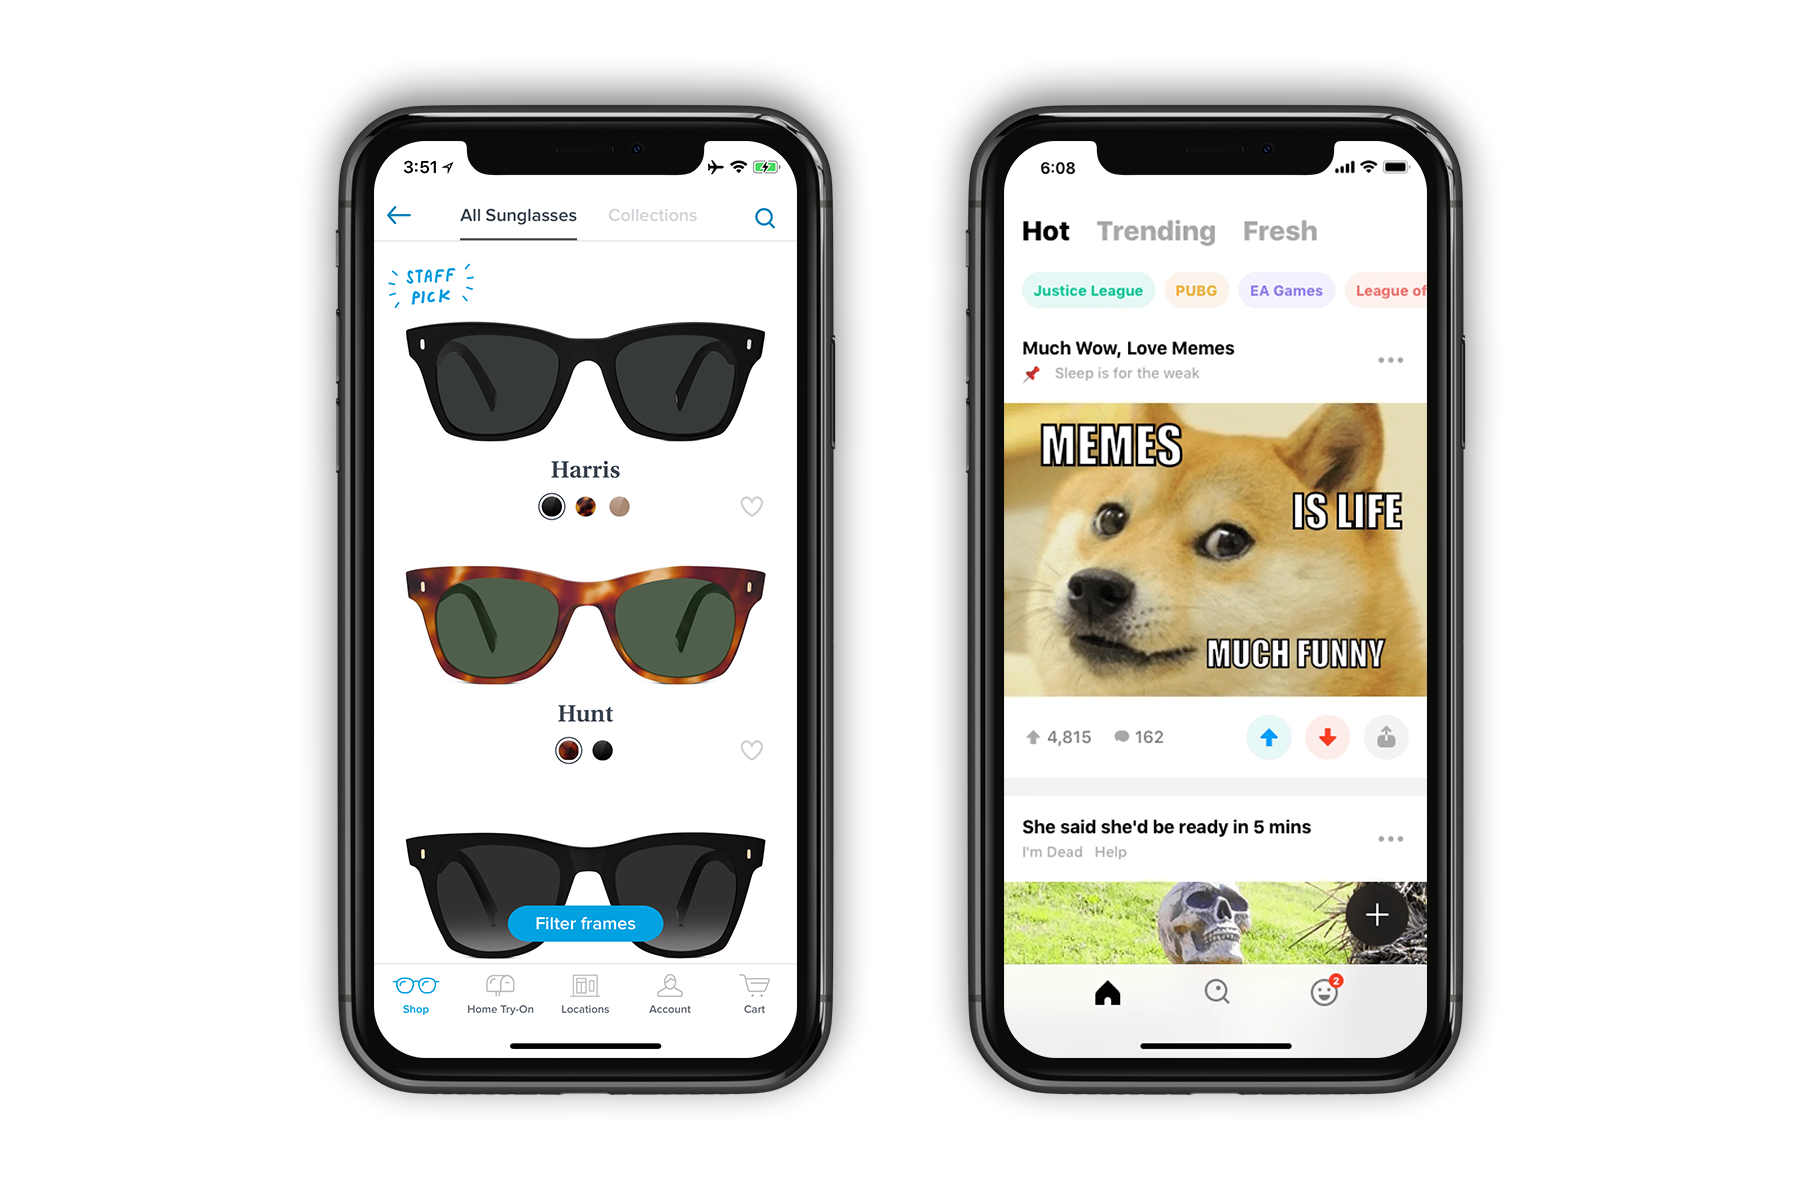 Previews of Warby Parker and 9GAG apps